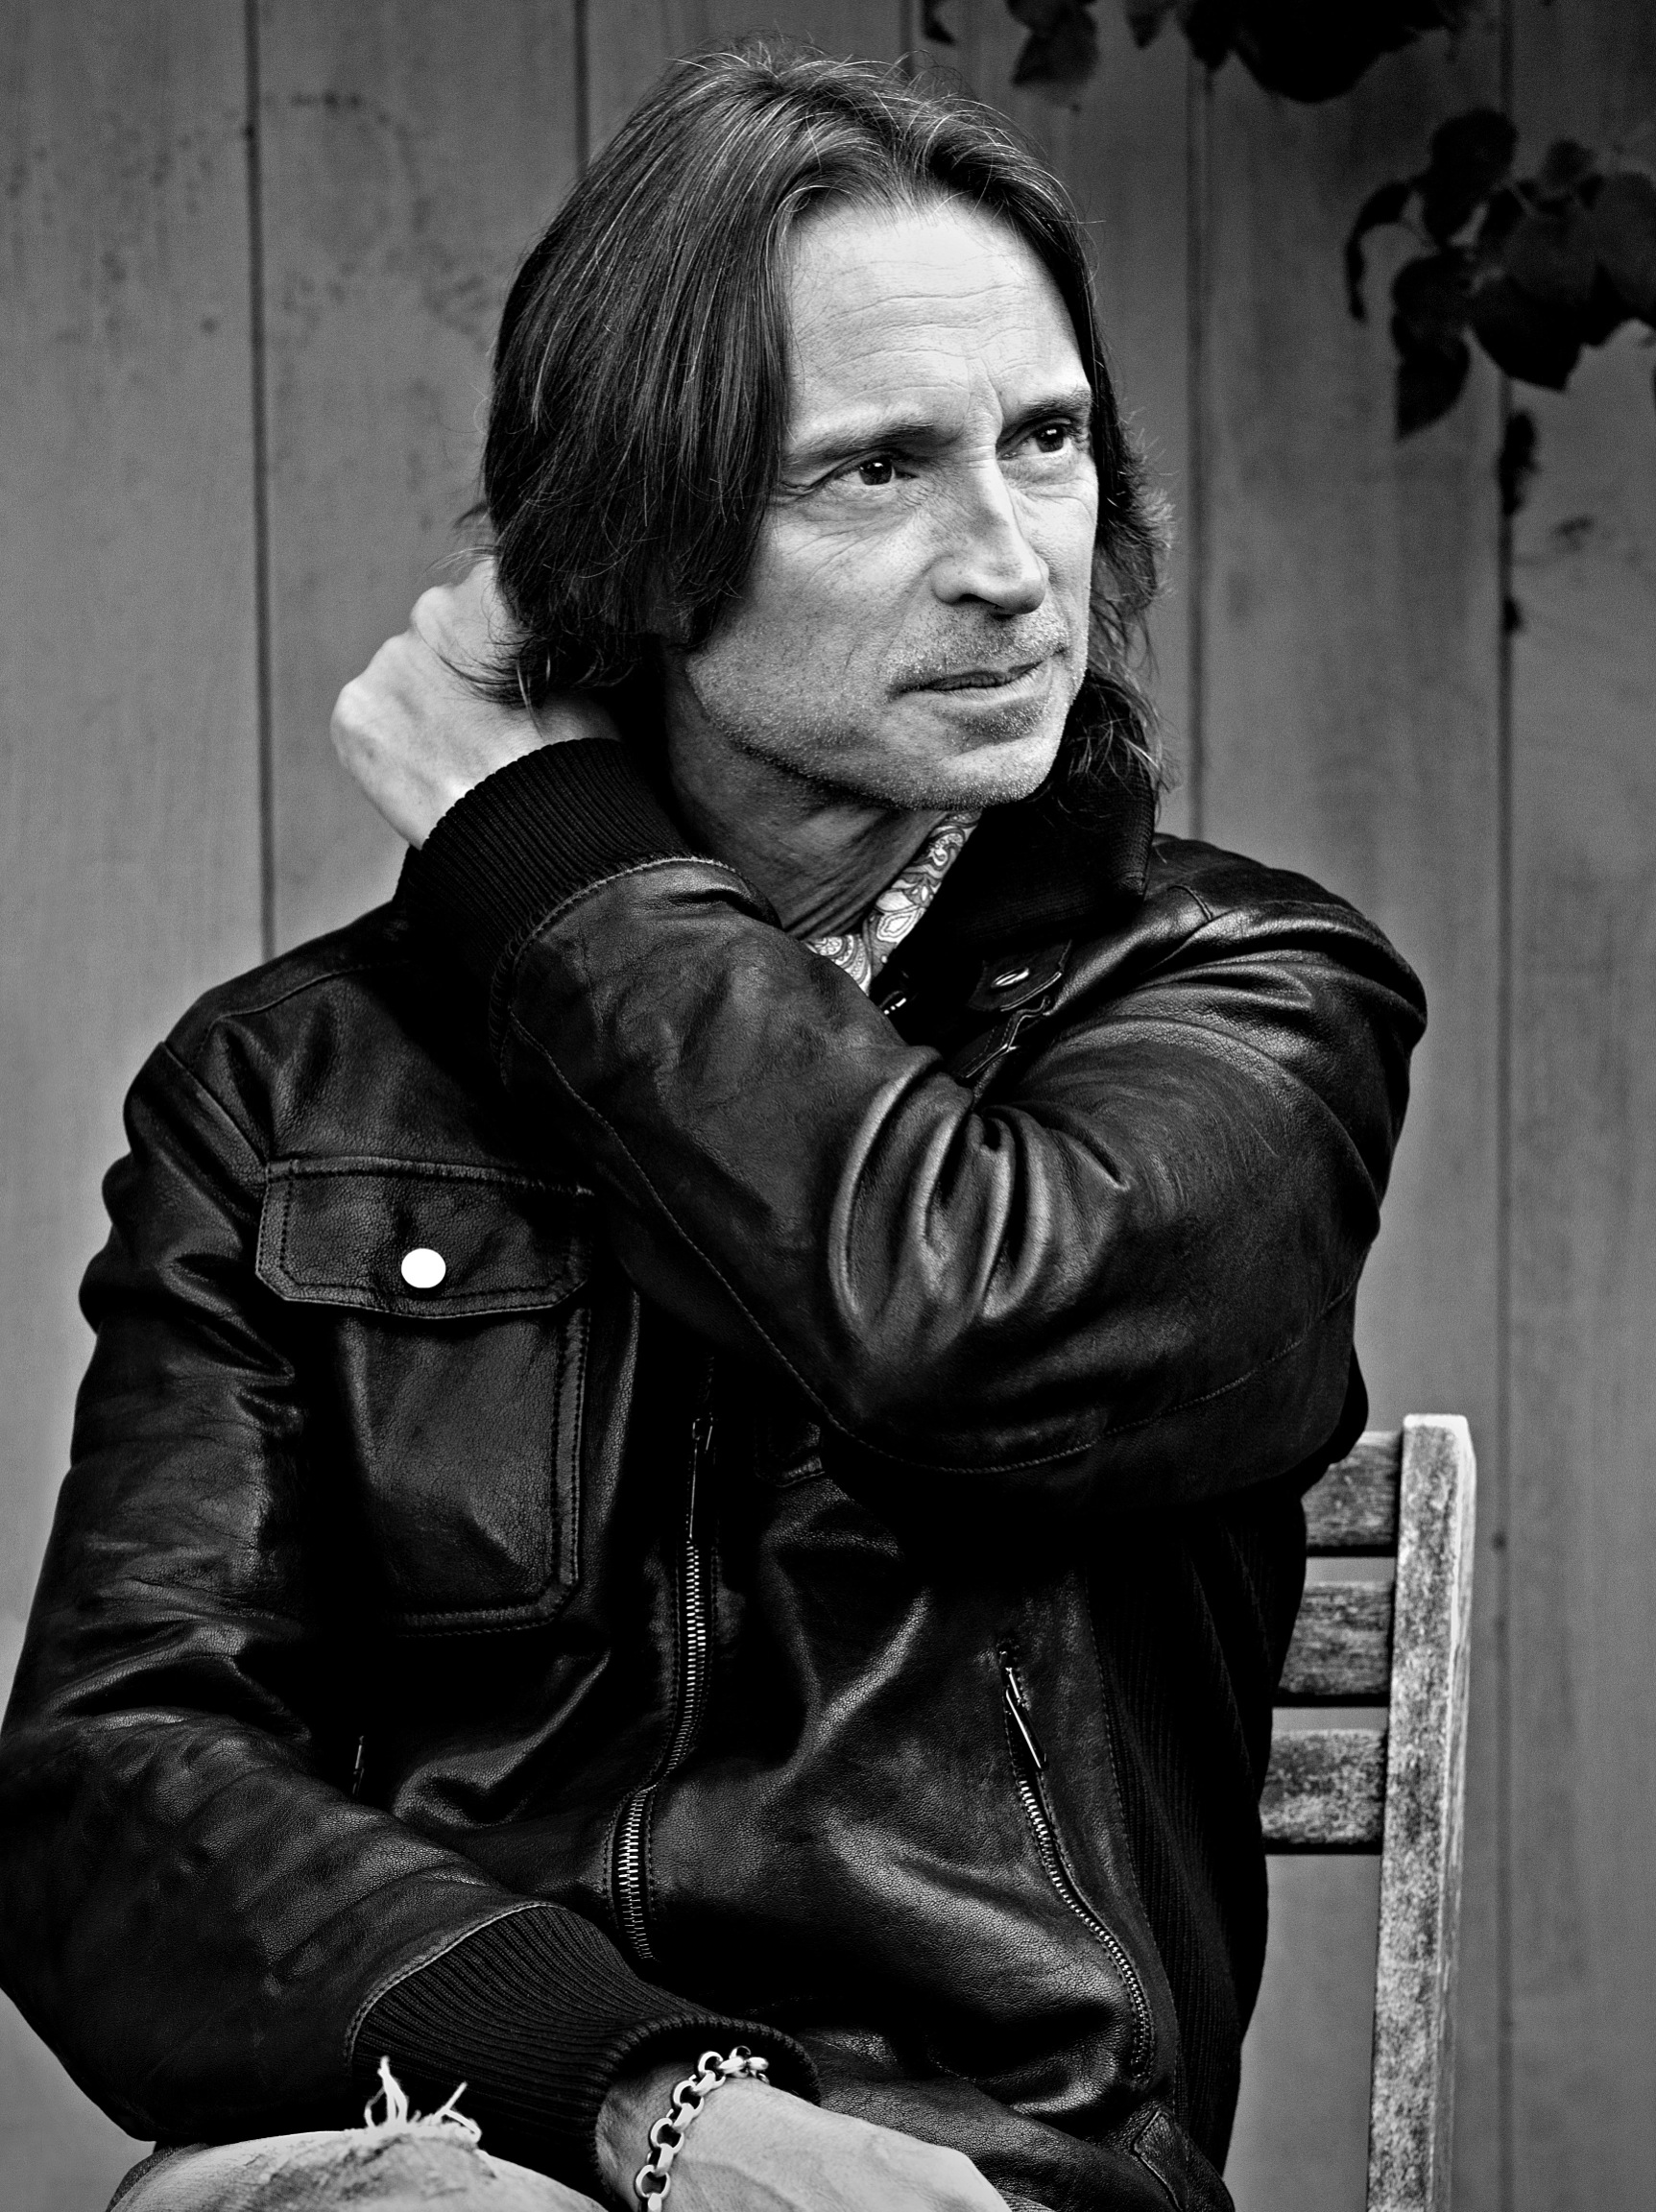 Communication on this topic: Amber Beattie, robert-carlyle-born-1961/